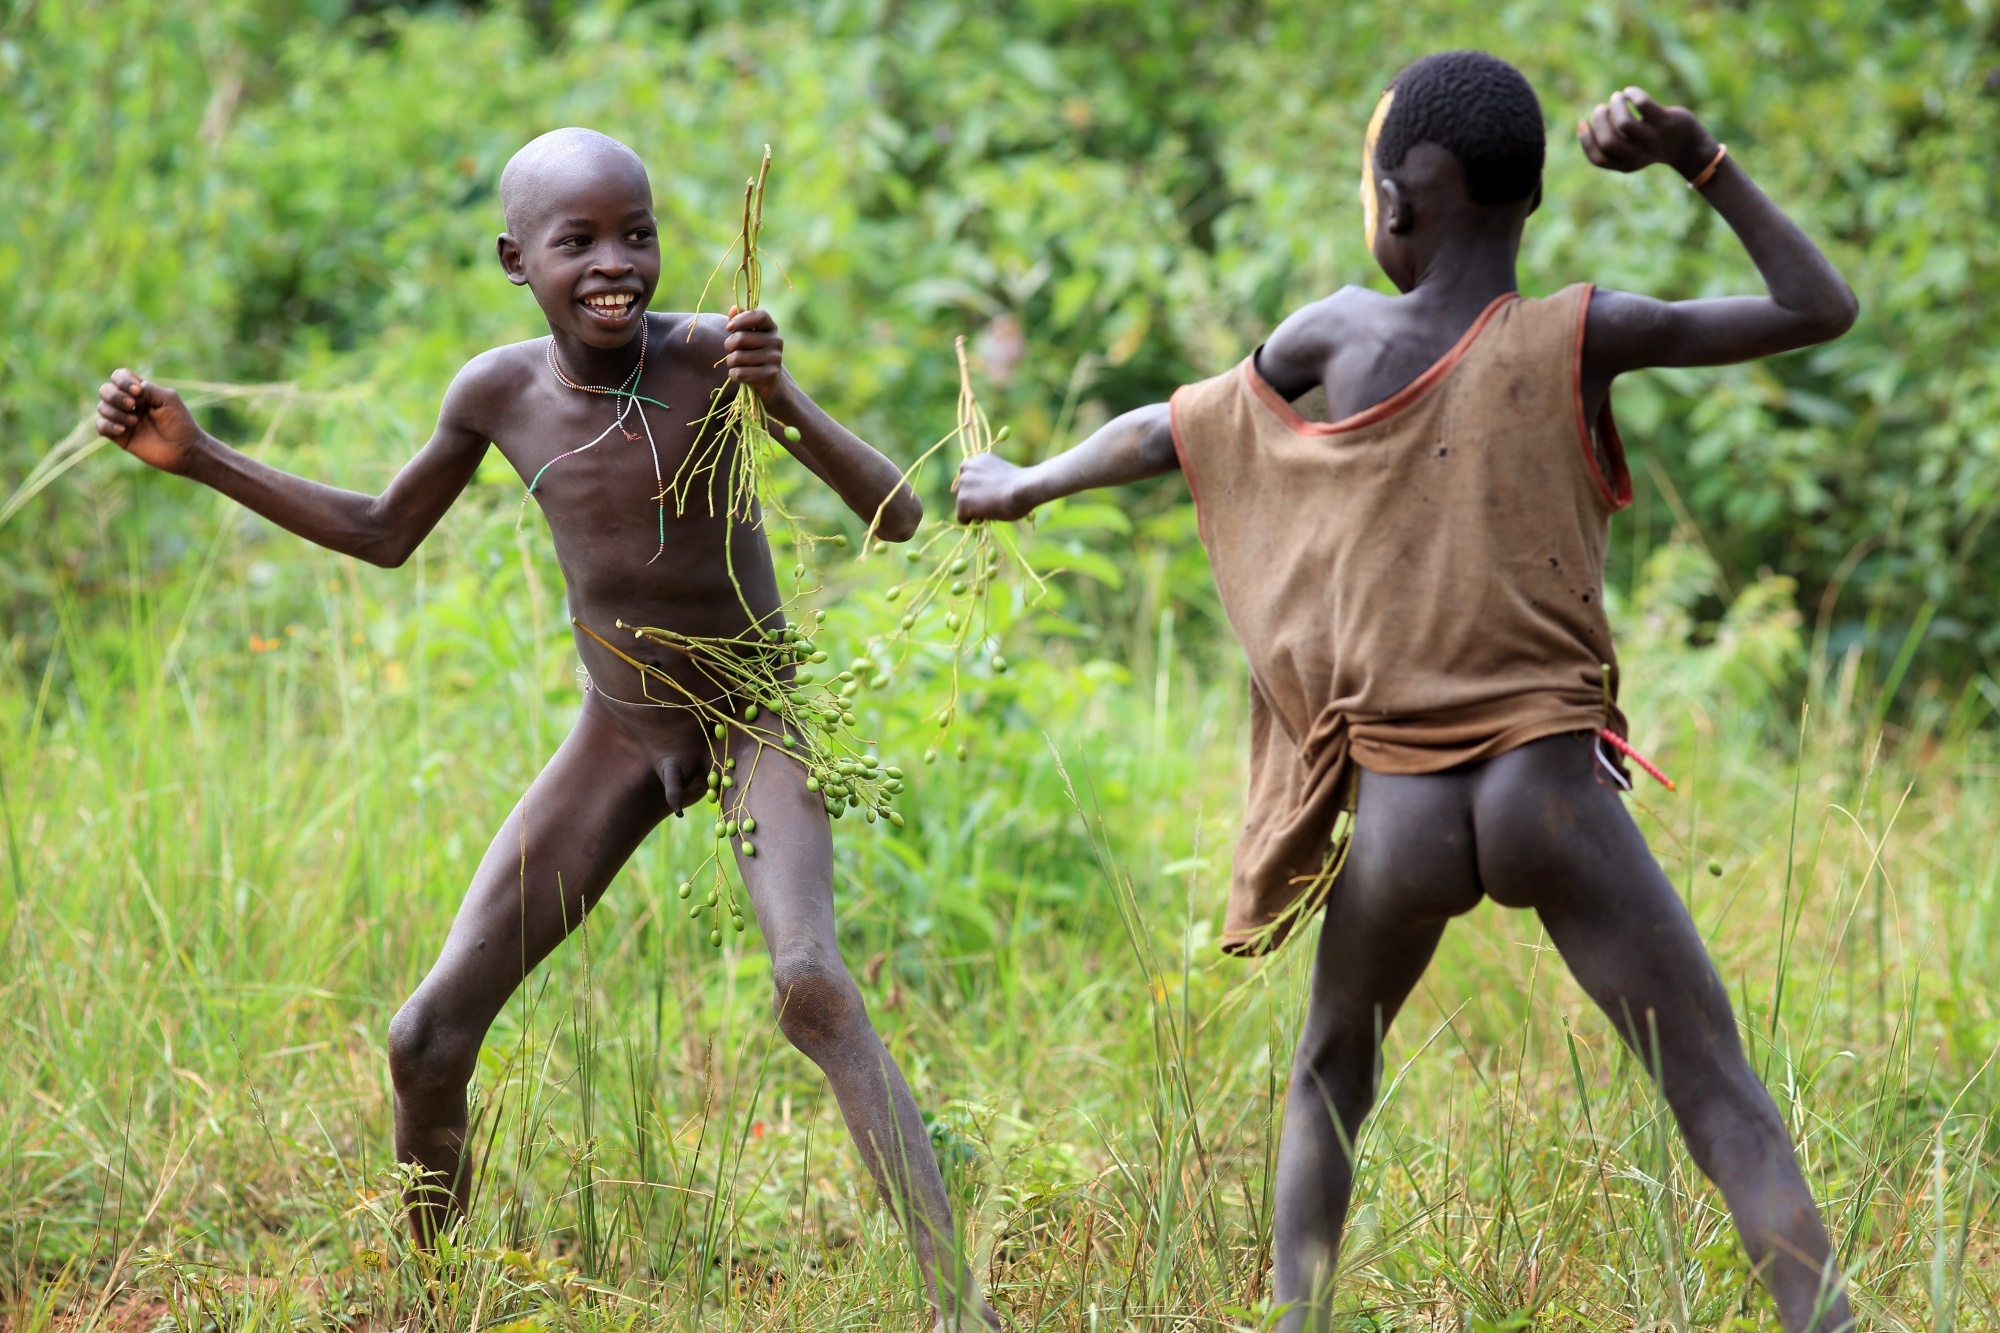 Naked african boy in tribe, pictures of cute short black hairstyles